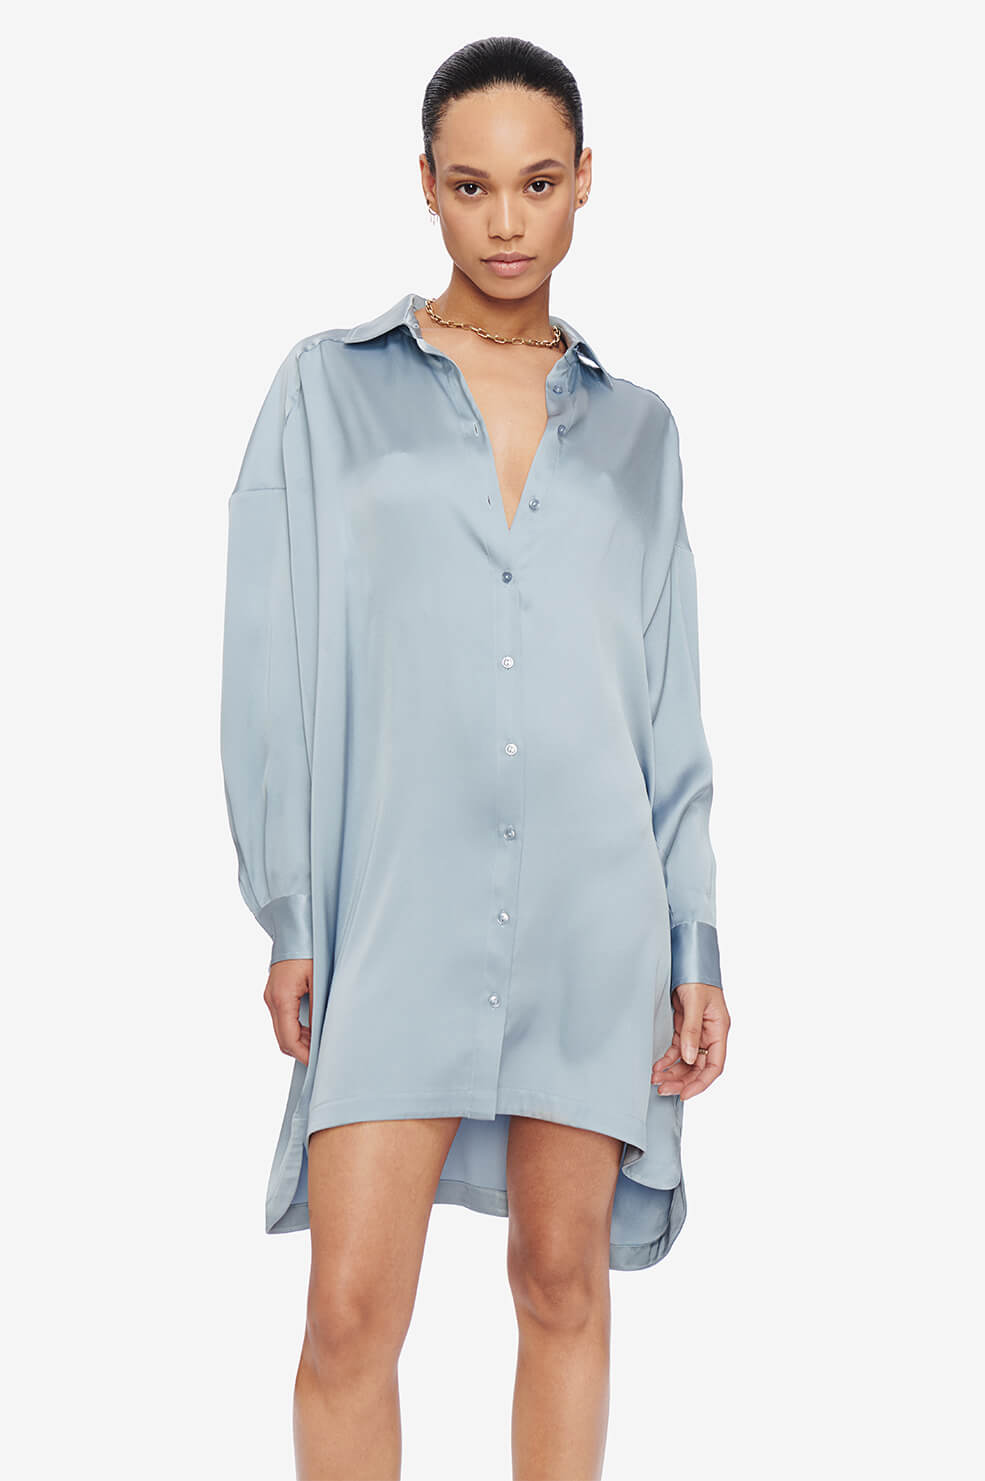 ANINE BING Aubrey Dress - Barely Blue